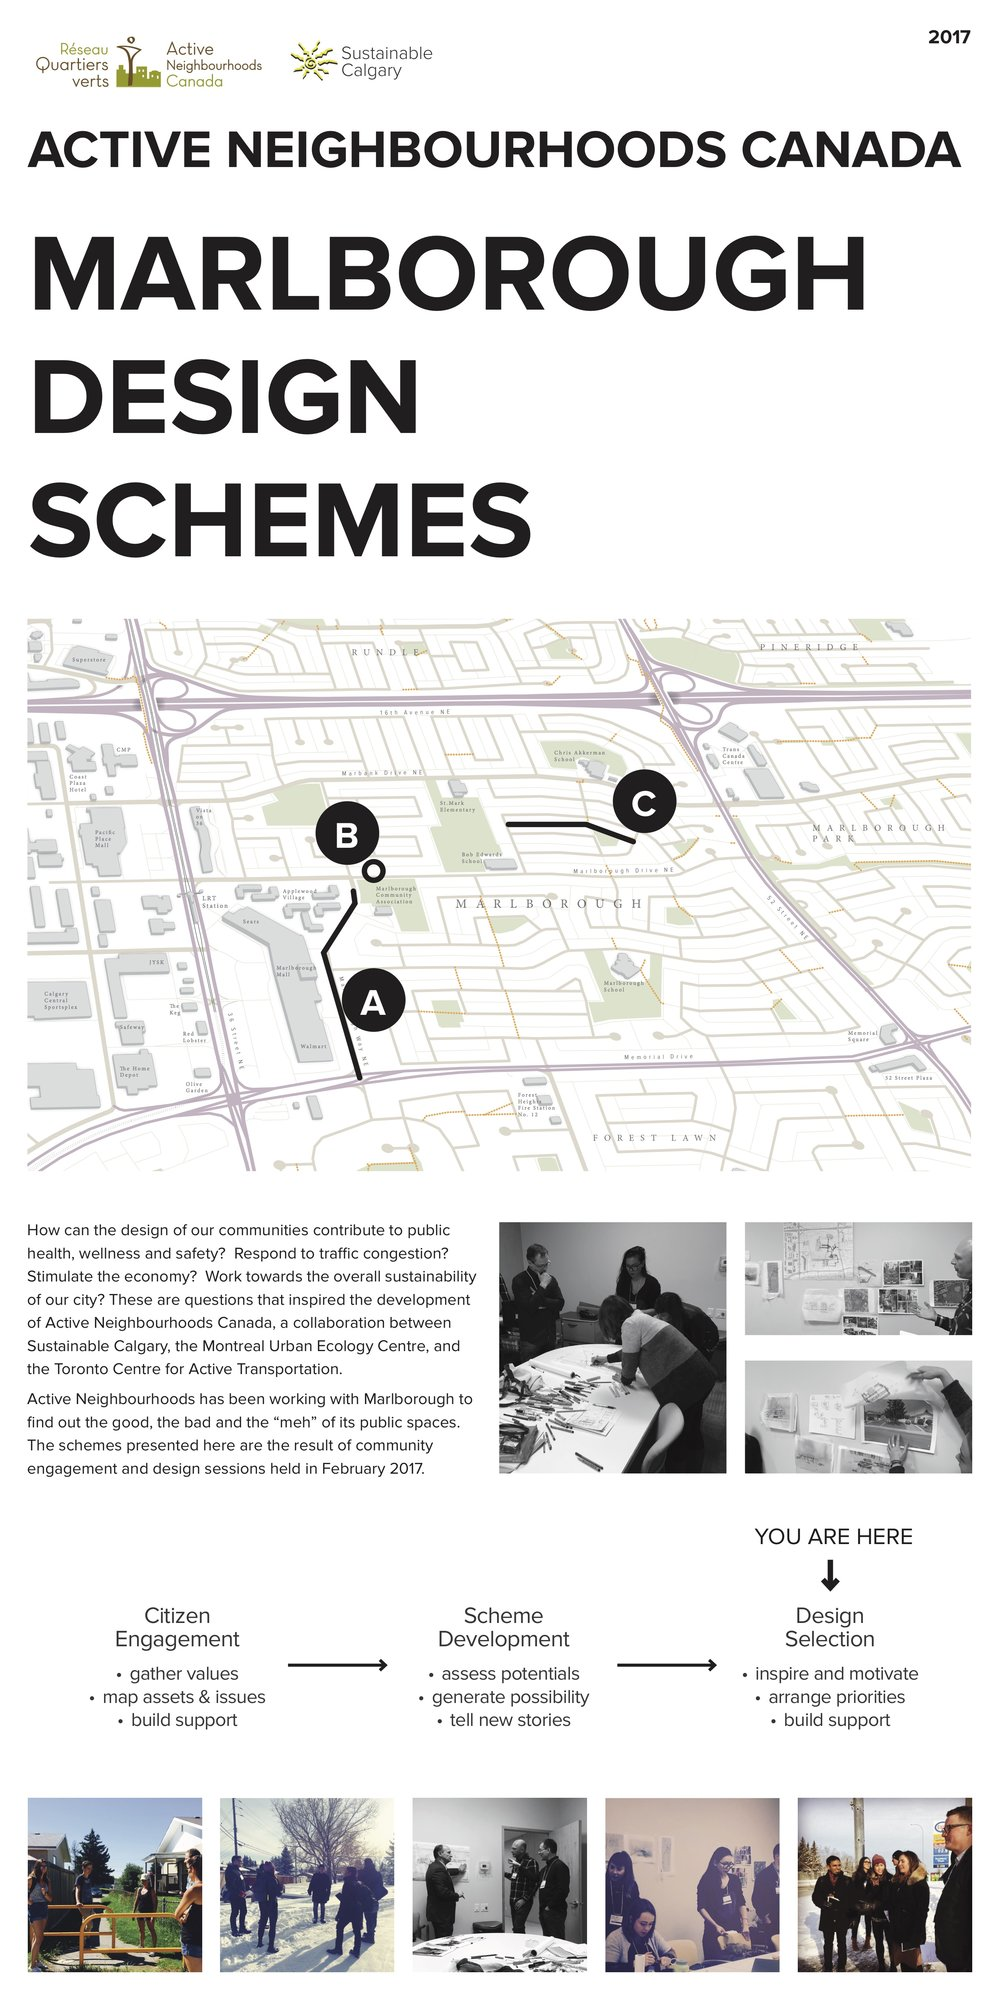 Marlborough Schemes page 1.jpg